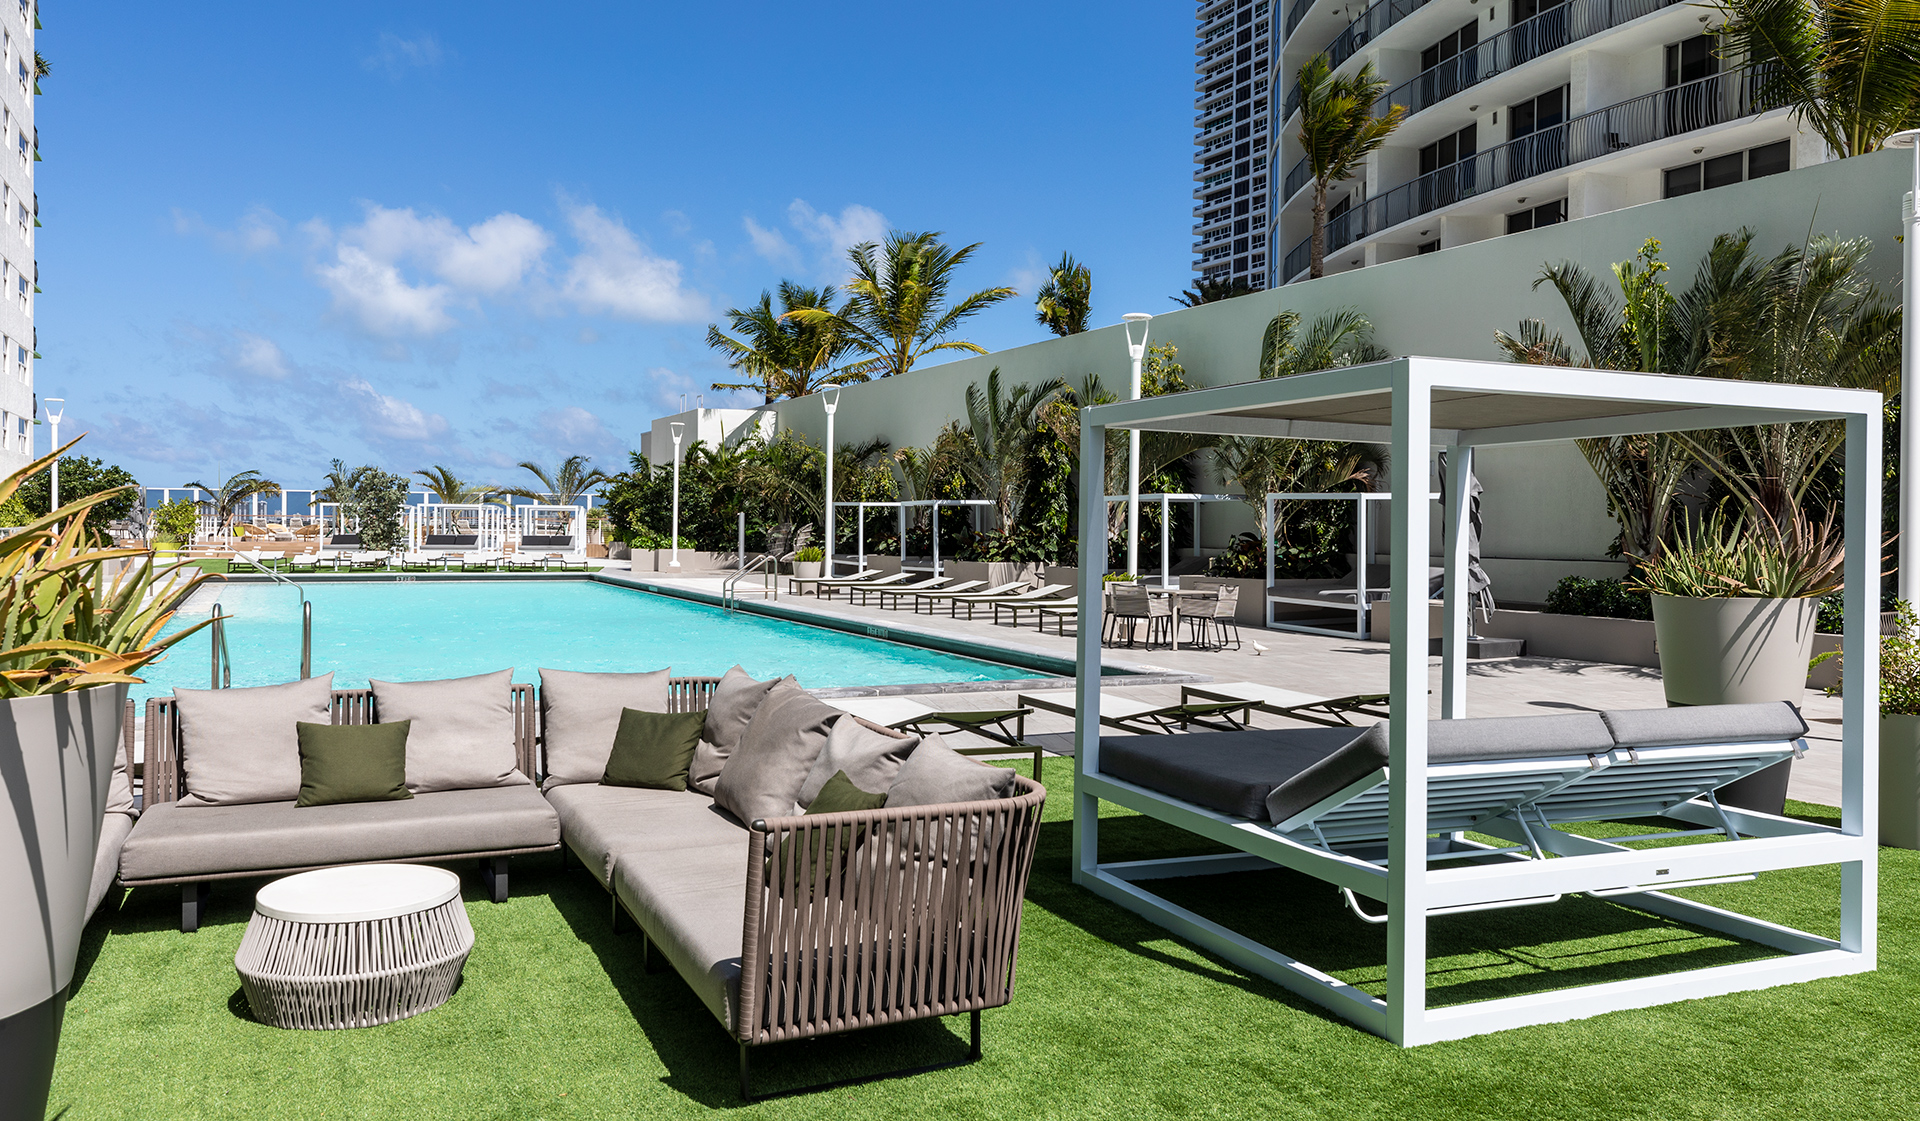 Bay Parc Apartments - Miami, FL - Patio and pool